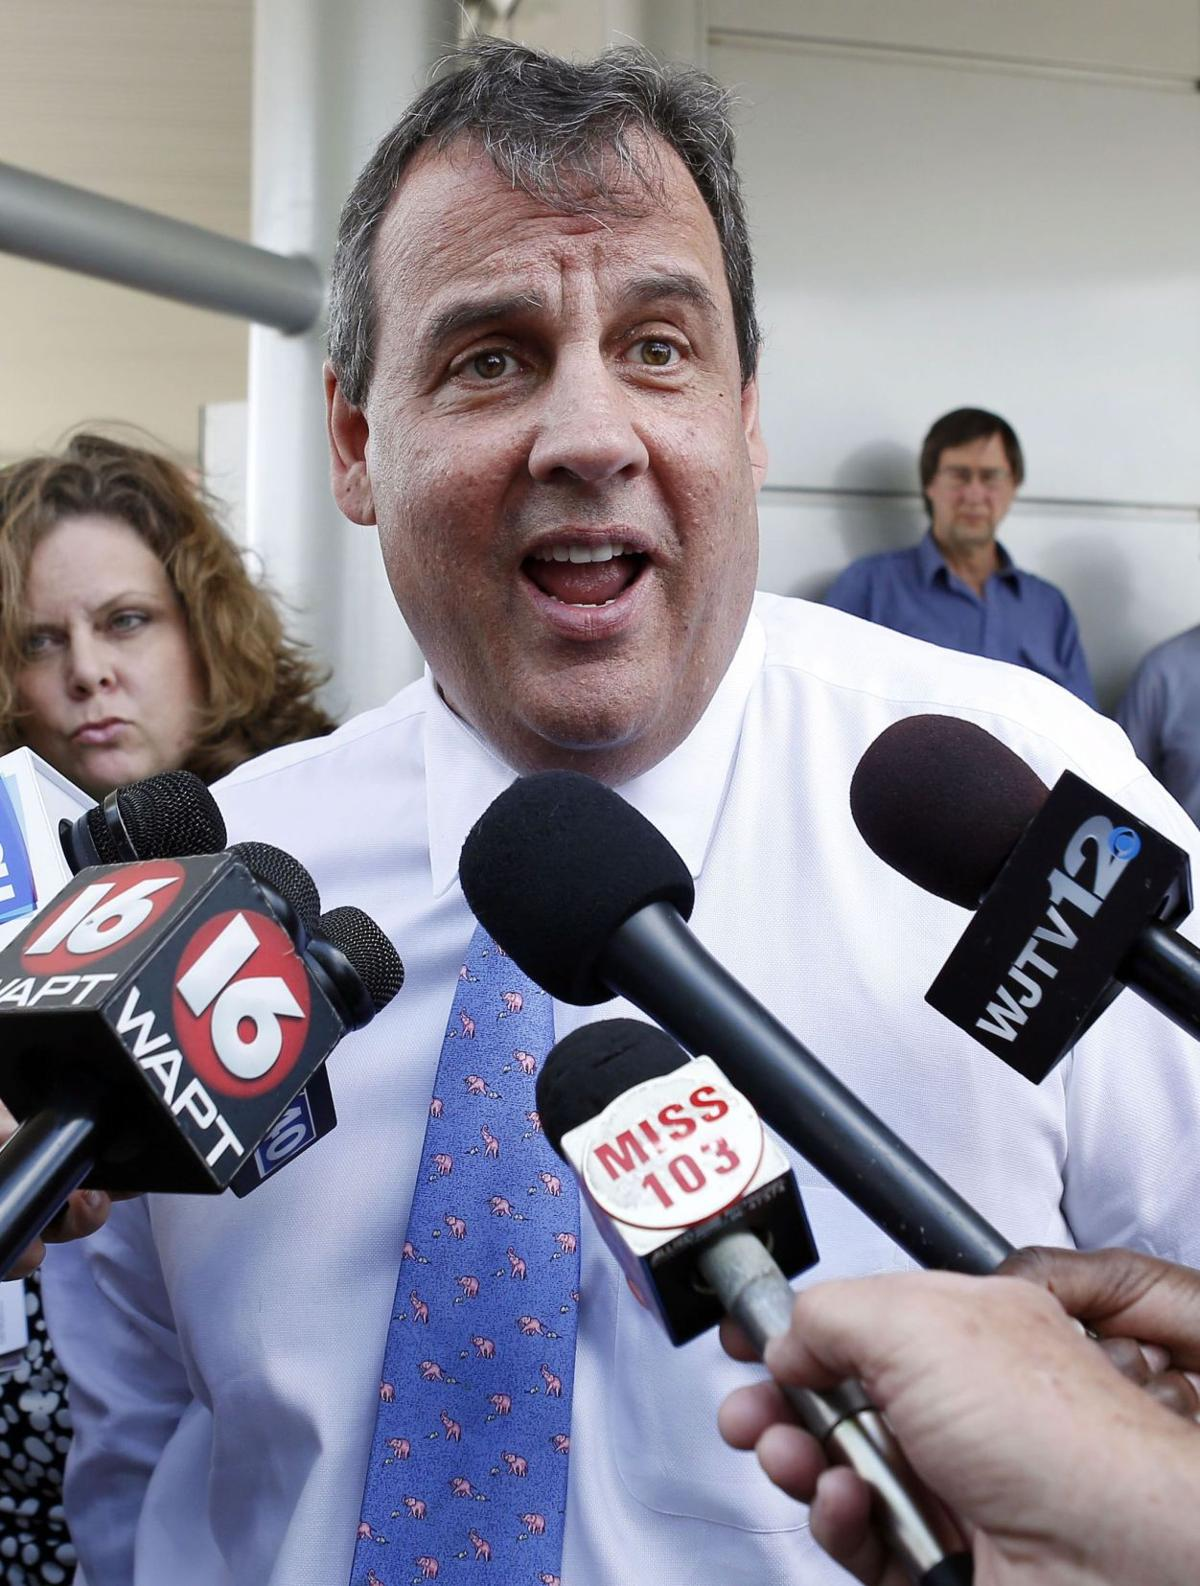 Christie returning to New Hampshire after bridge indictments